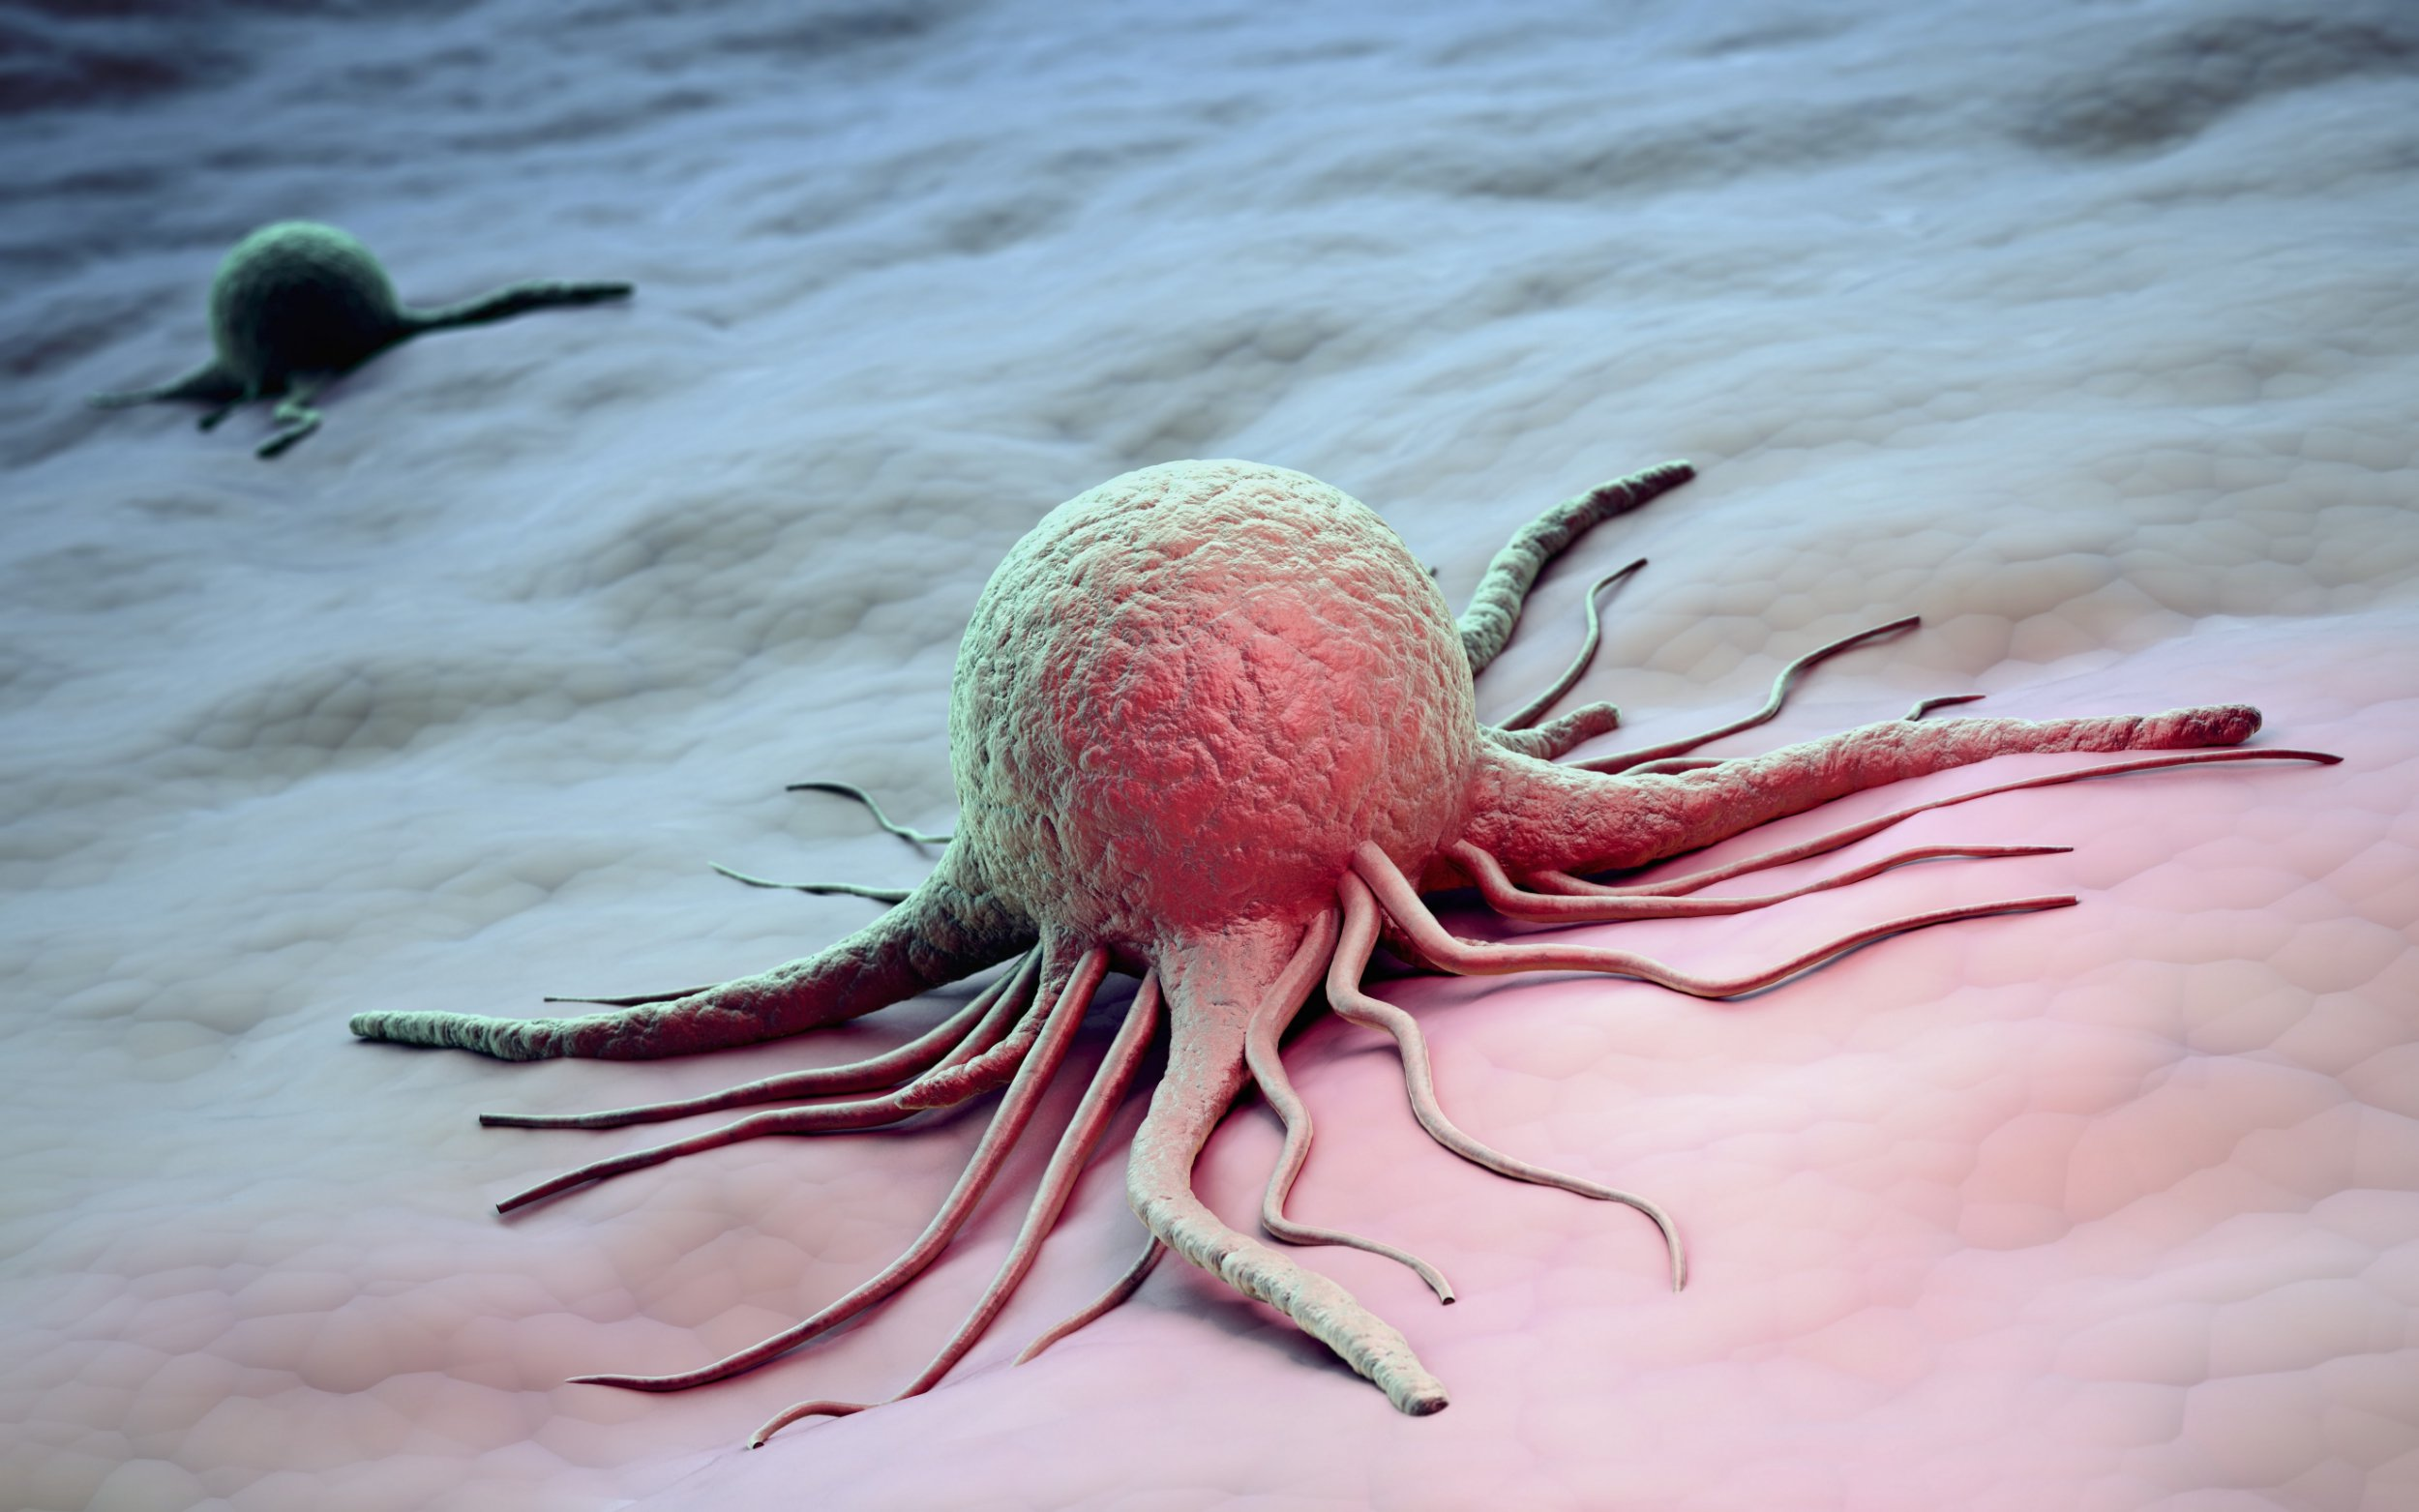 Scientists discover cancer cell Cancer cells, computer artwork.